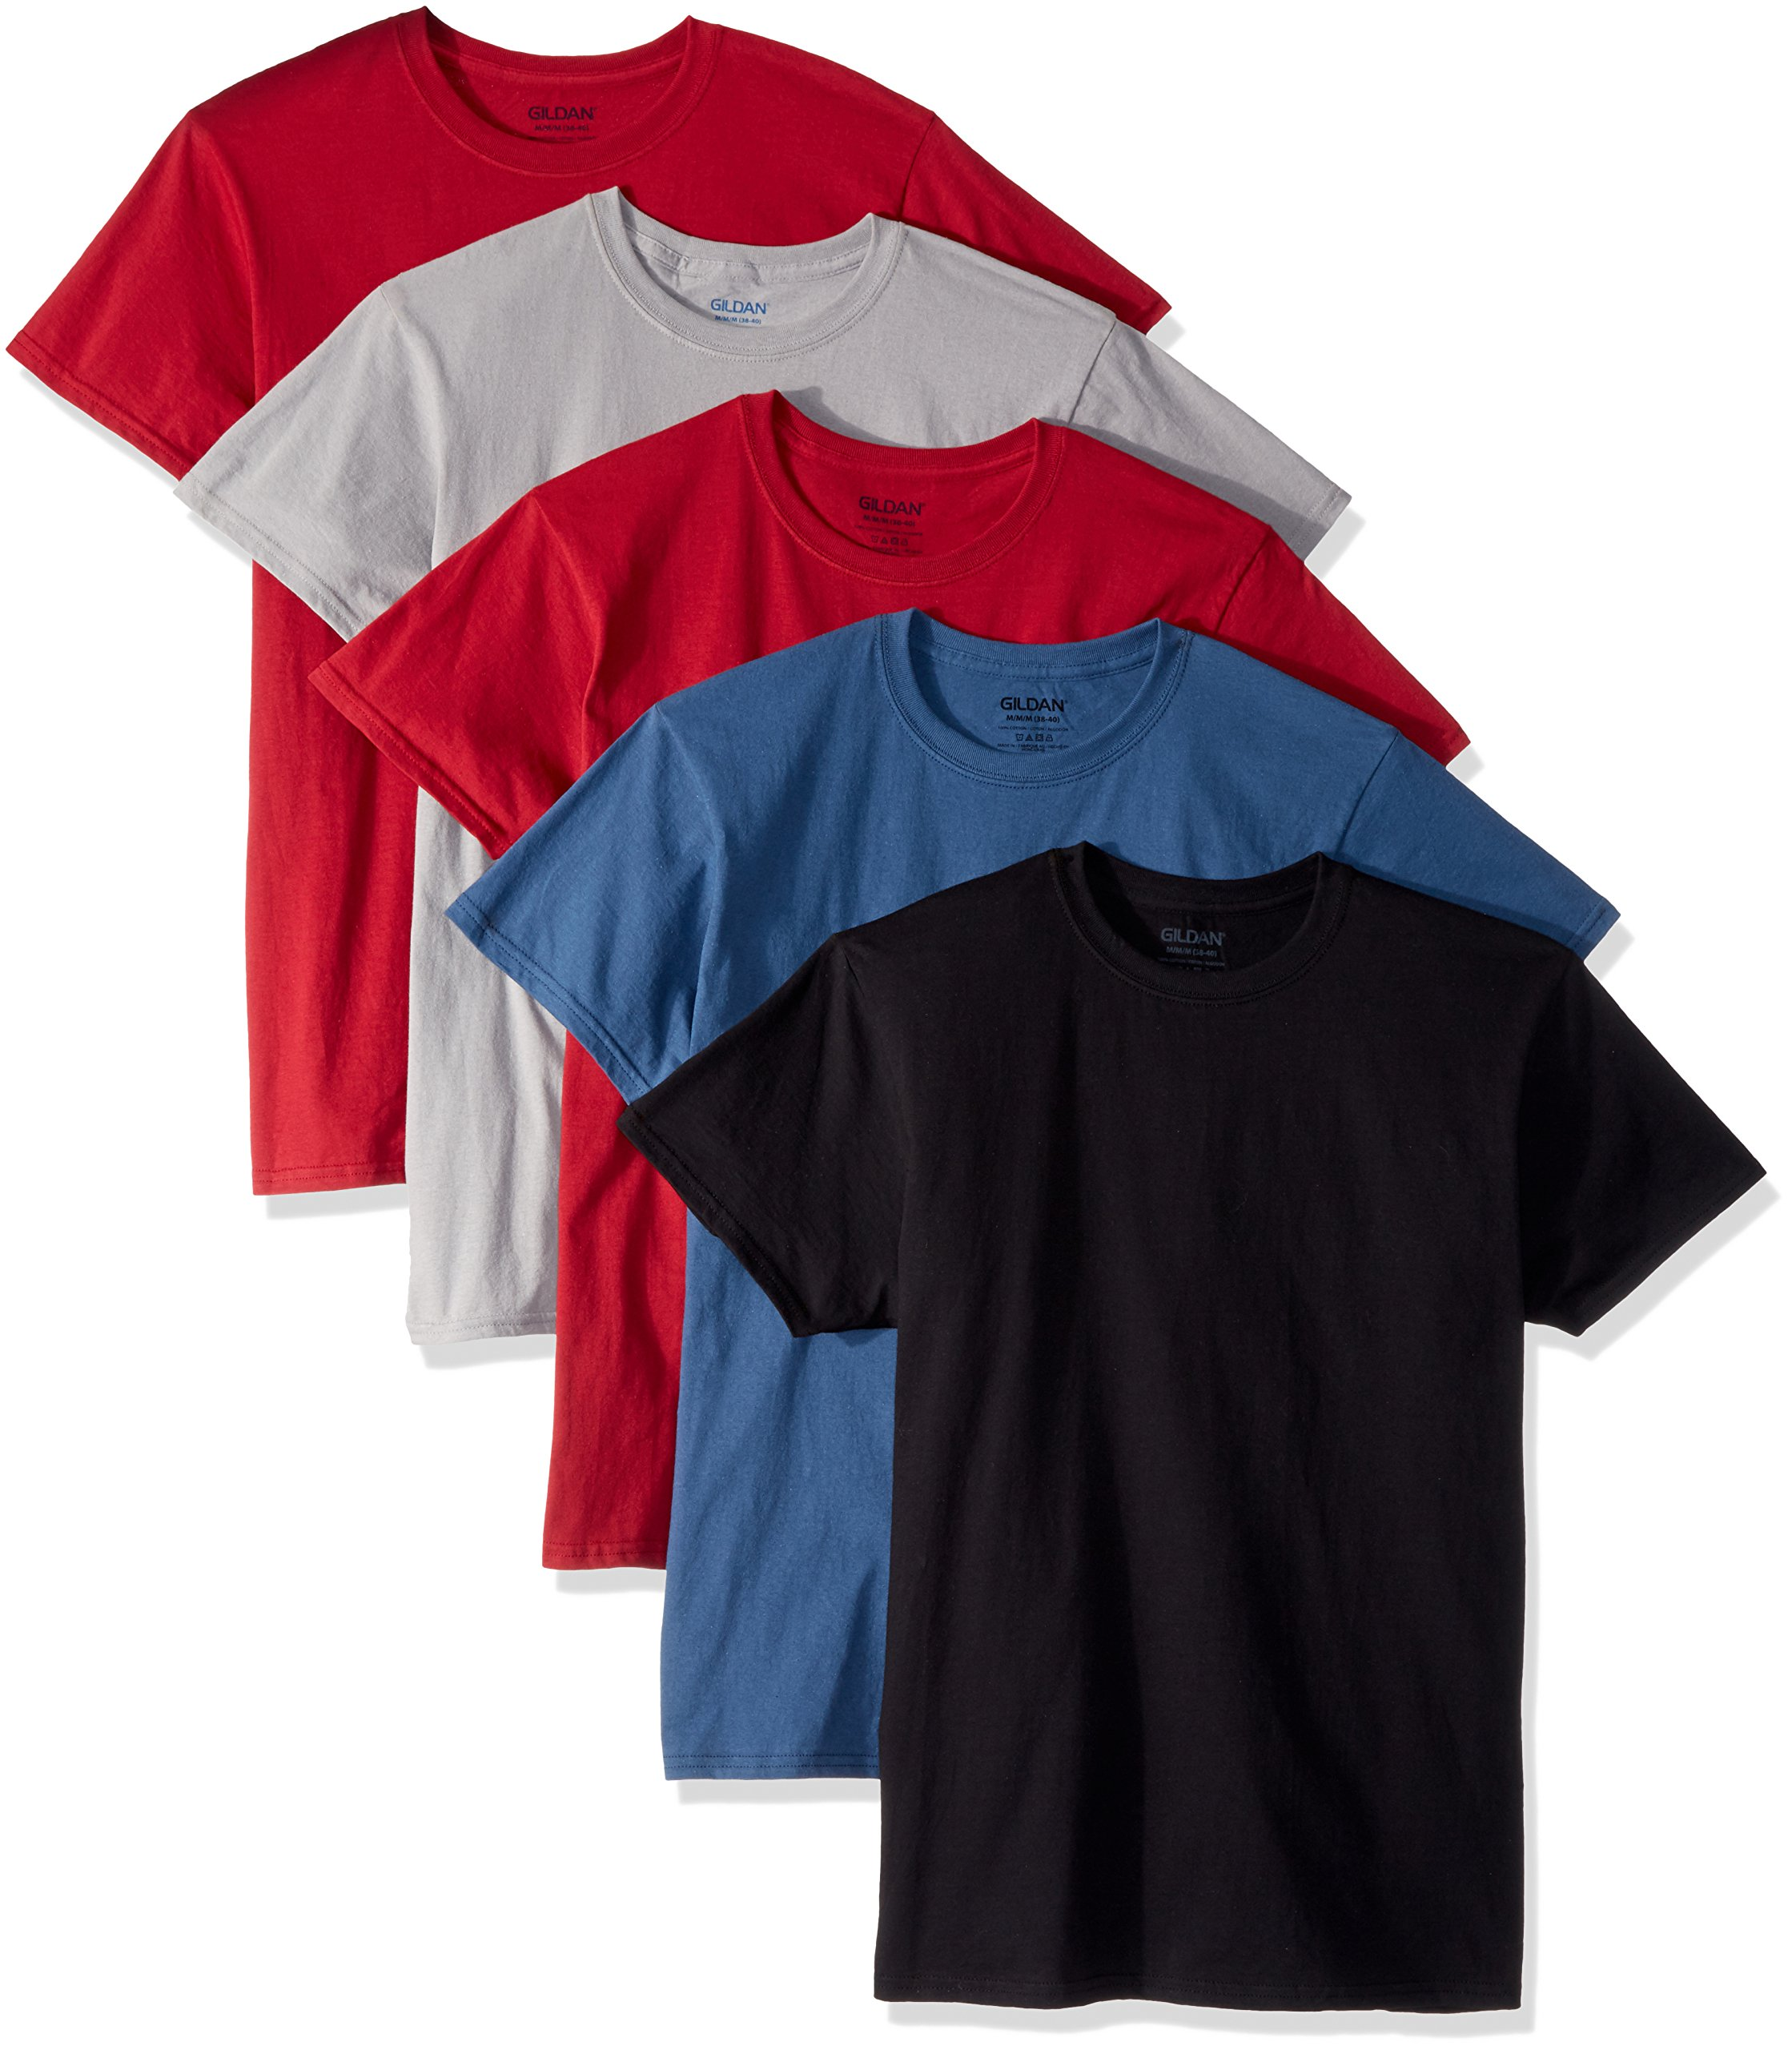 Cheap Blank Gildan T Shirts, find Blank Gildan T Shirts